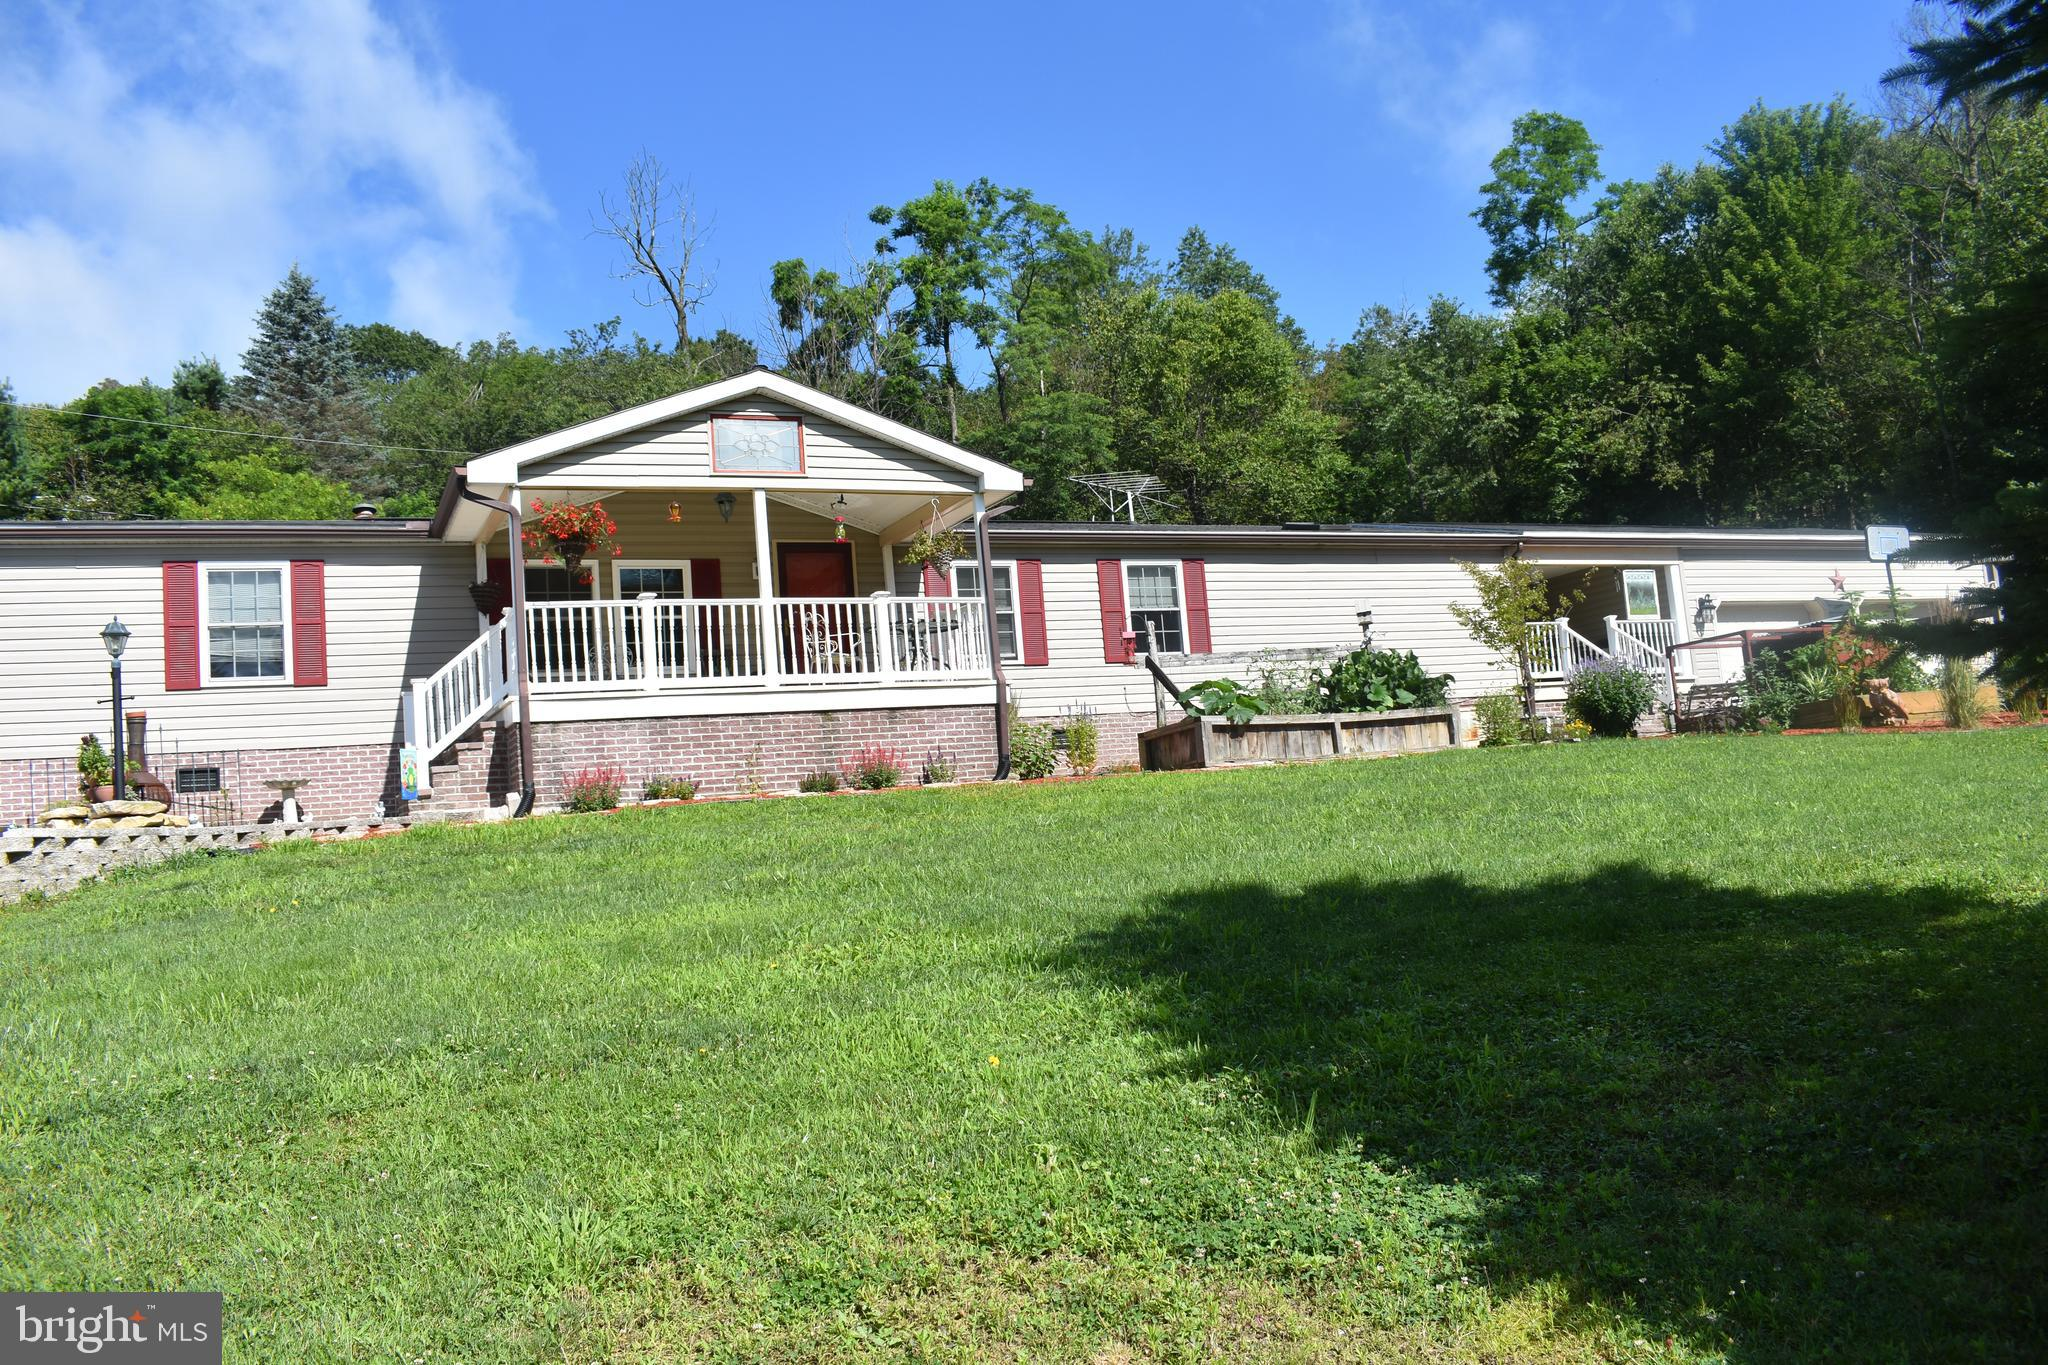 15776 OAK DRIVE, FORT LOUDON, PA 17224